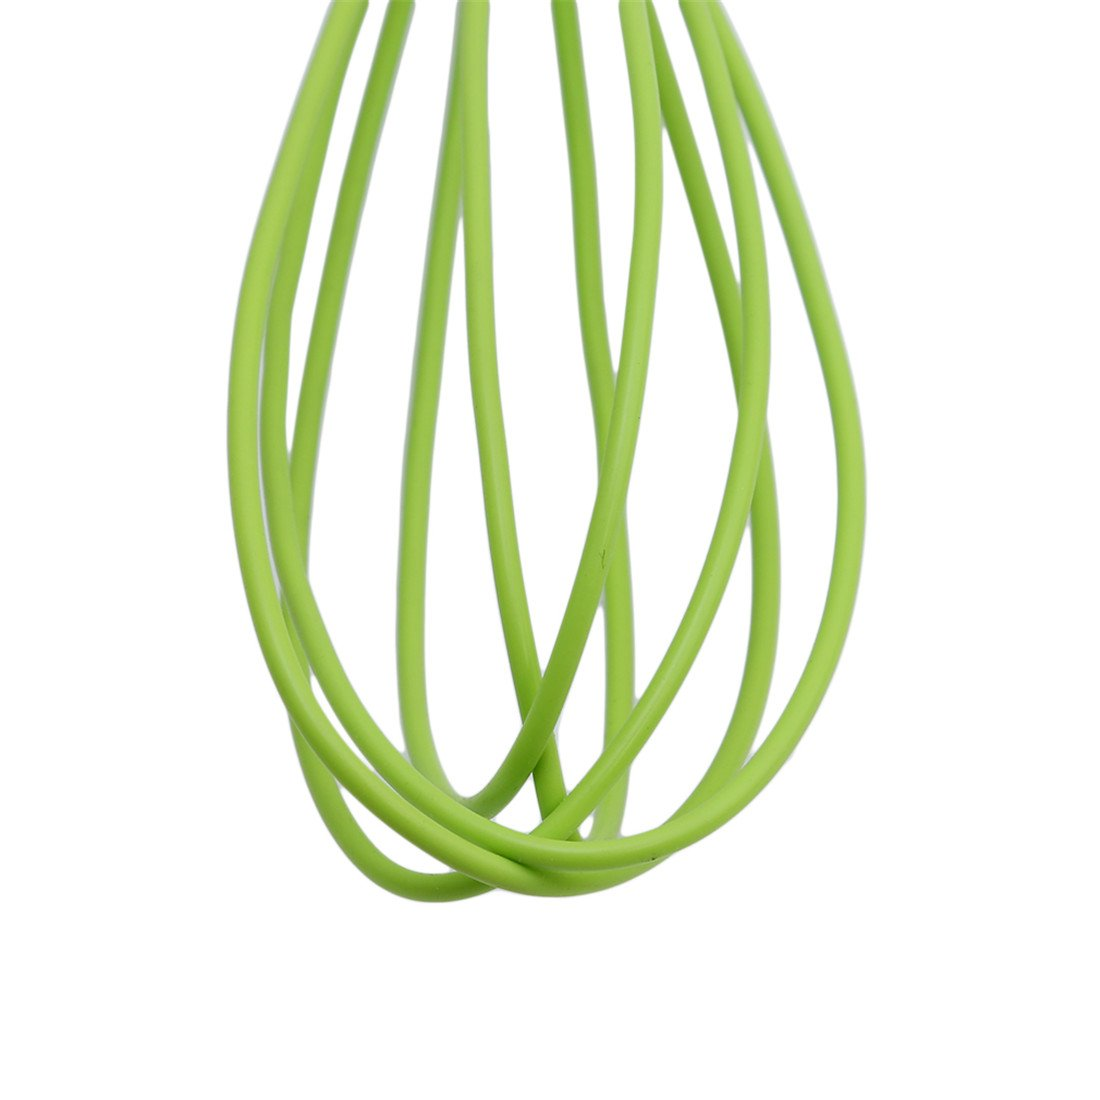 LALANG Silicone Manual Balloon Whisk Egg Beater Blender Kitchen Tools green